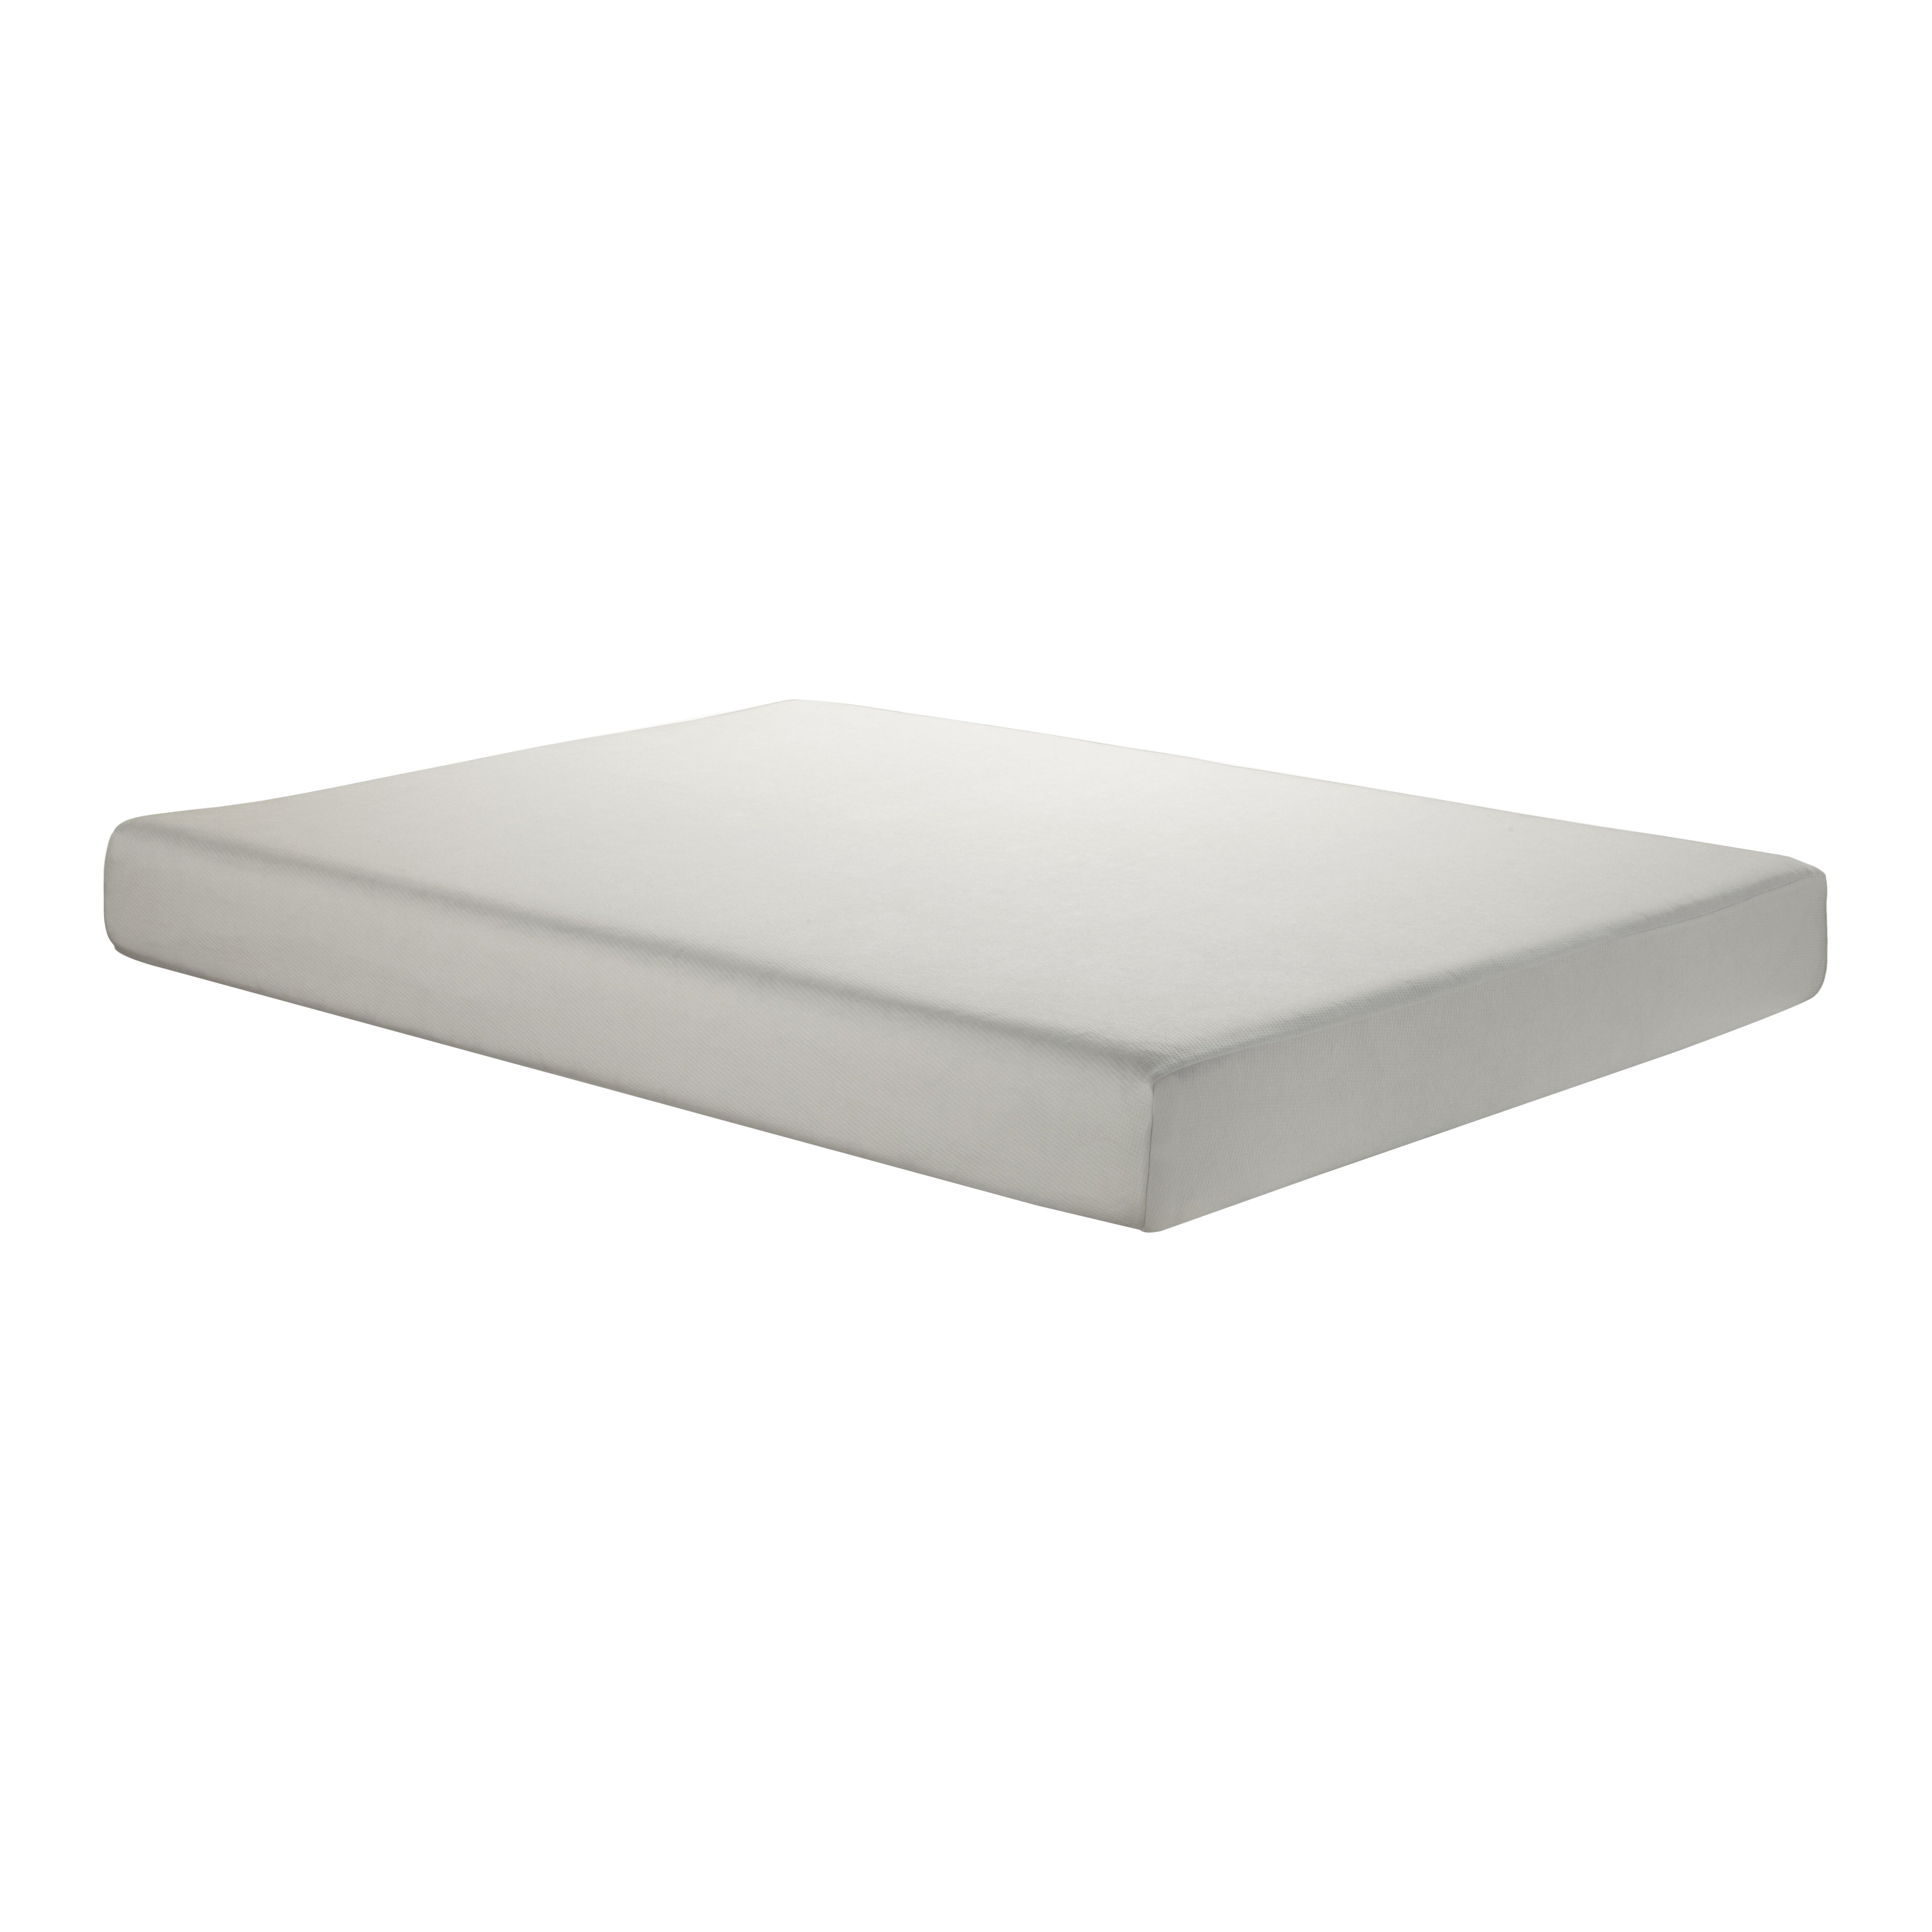 Blissfulnights Visco 8 Memory Foam Mattress Reviews Wayfair